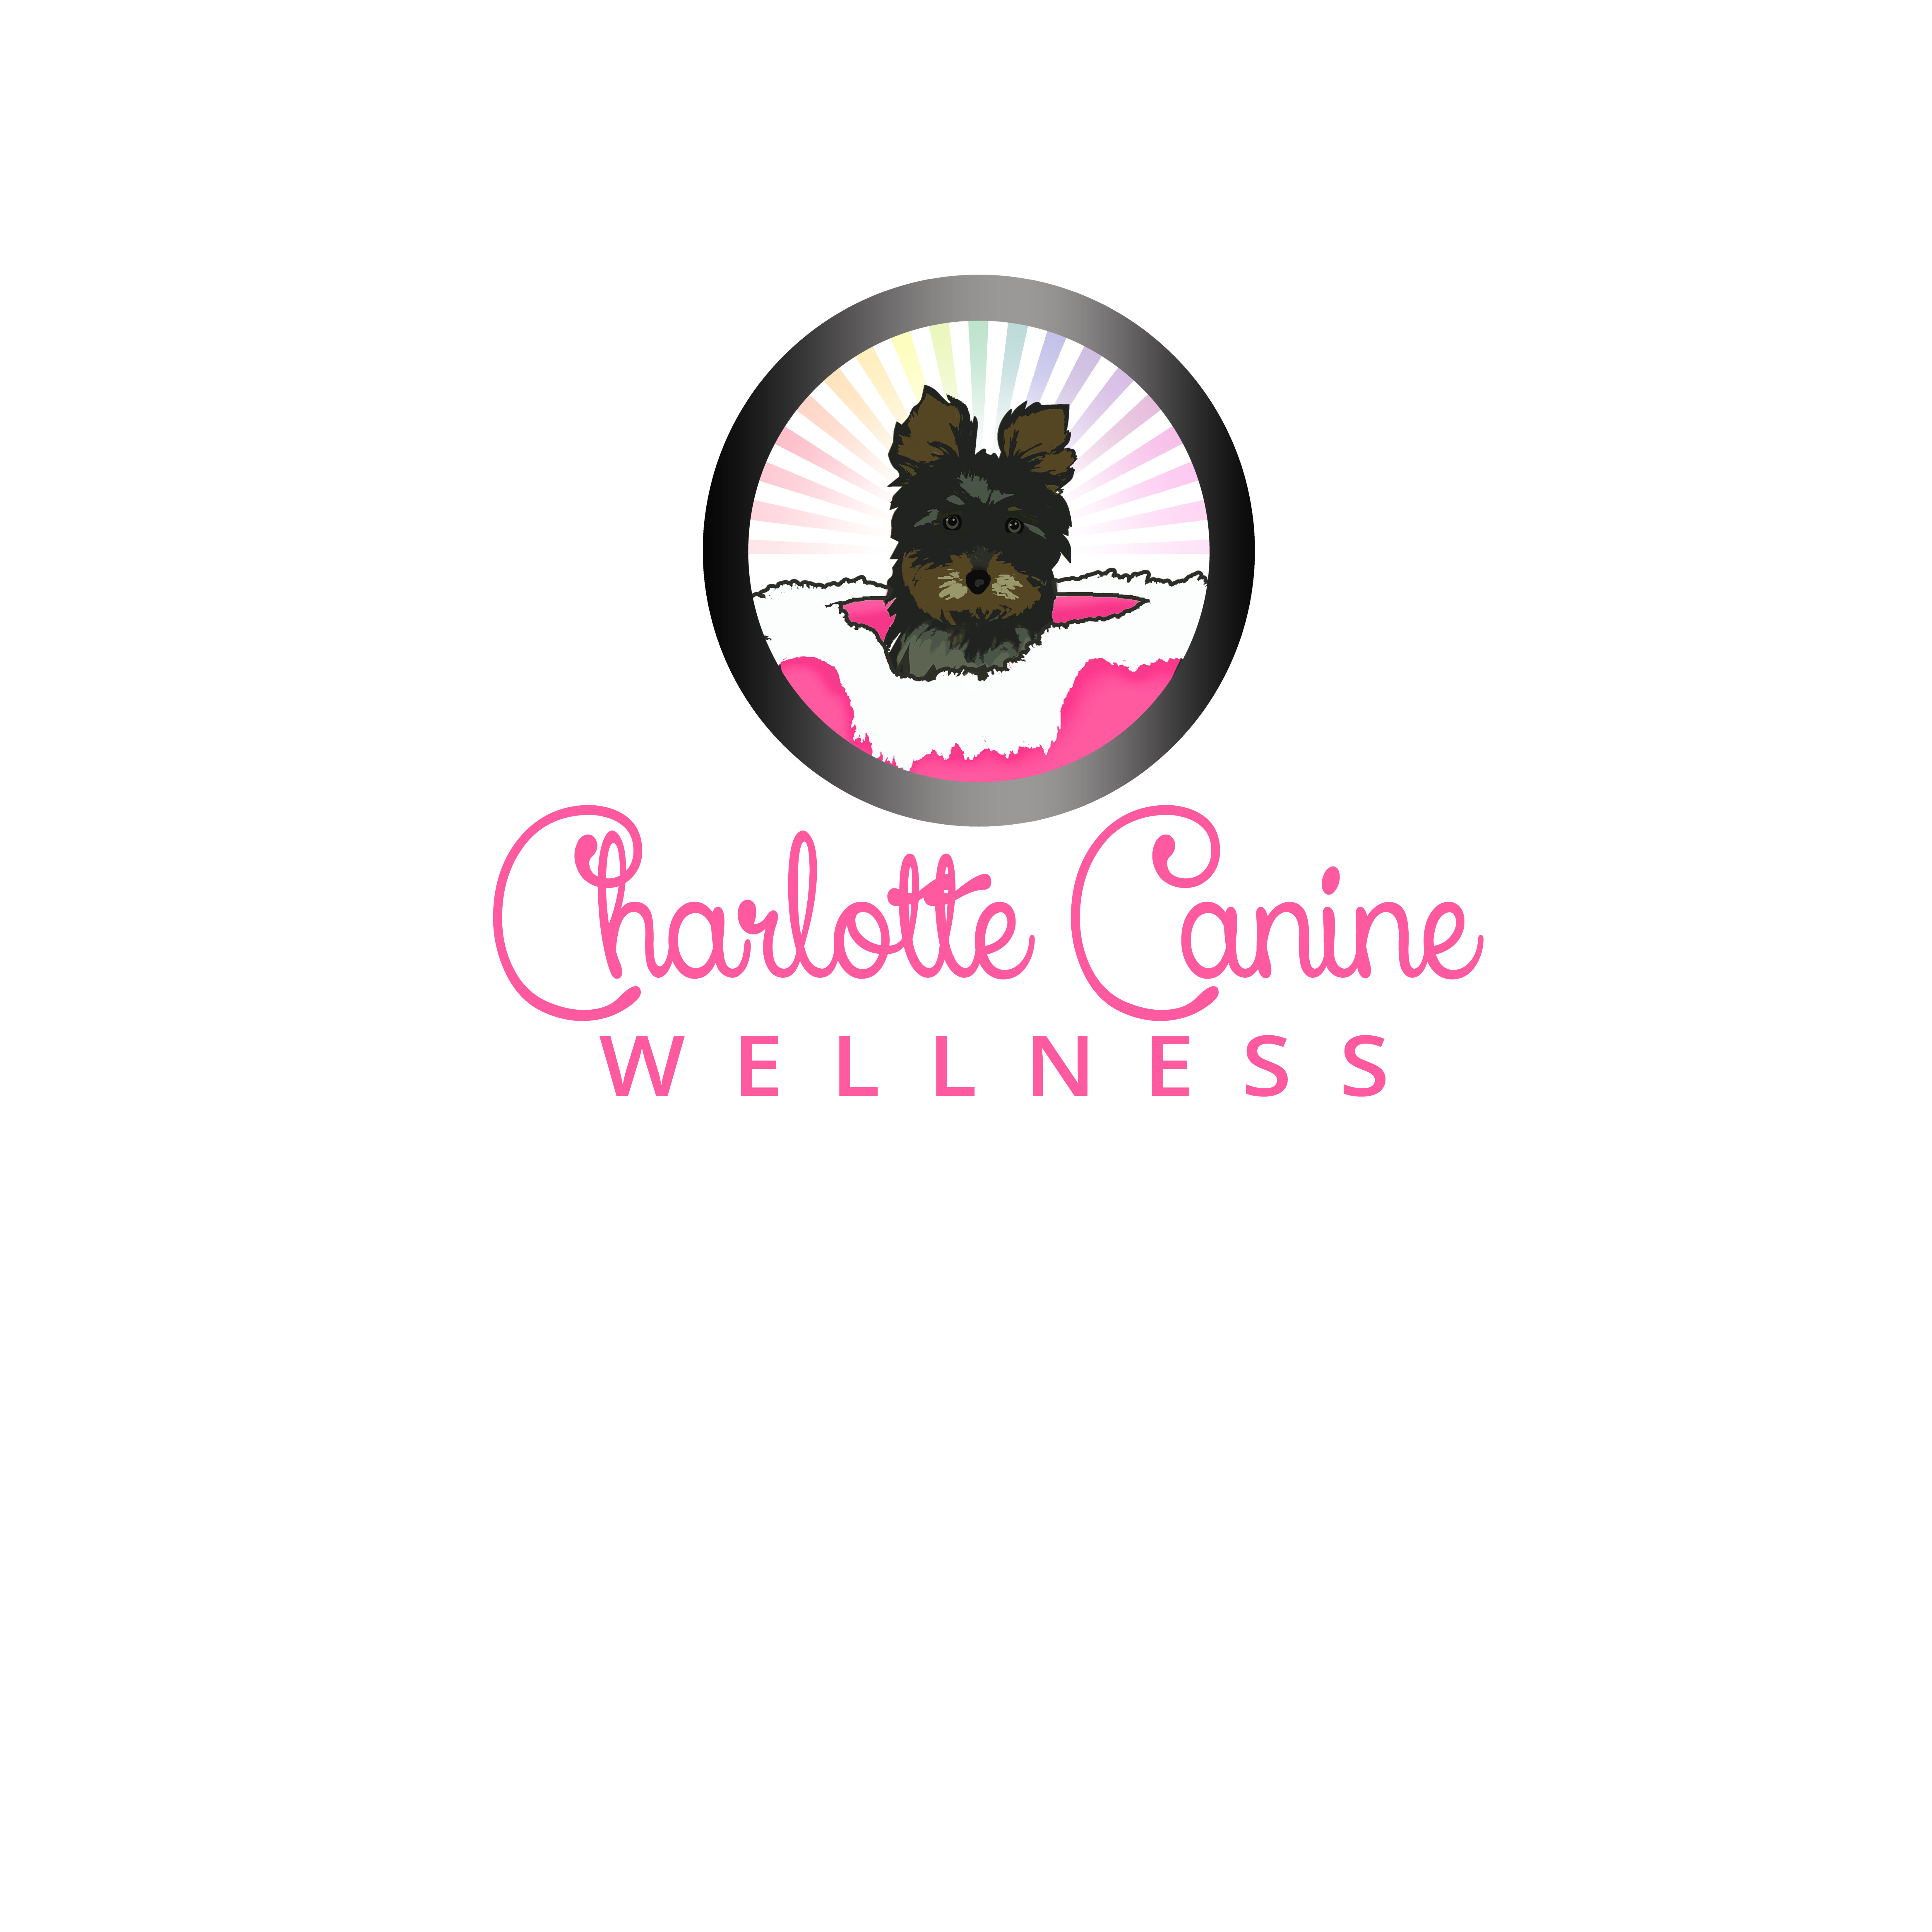 Logo Design by Allan Esclamado - Entry No. 88 in the Logo Design Contest New Logo Design for Charlotte Canine Wellness.